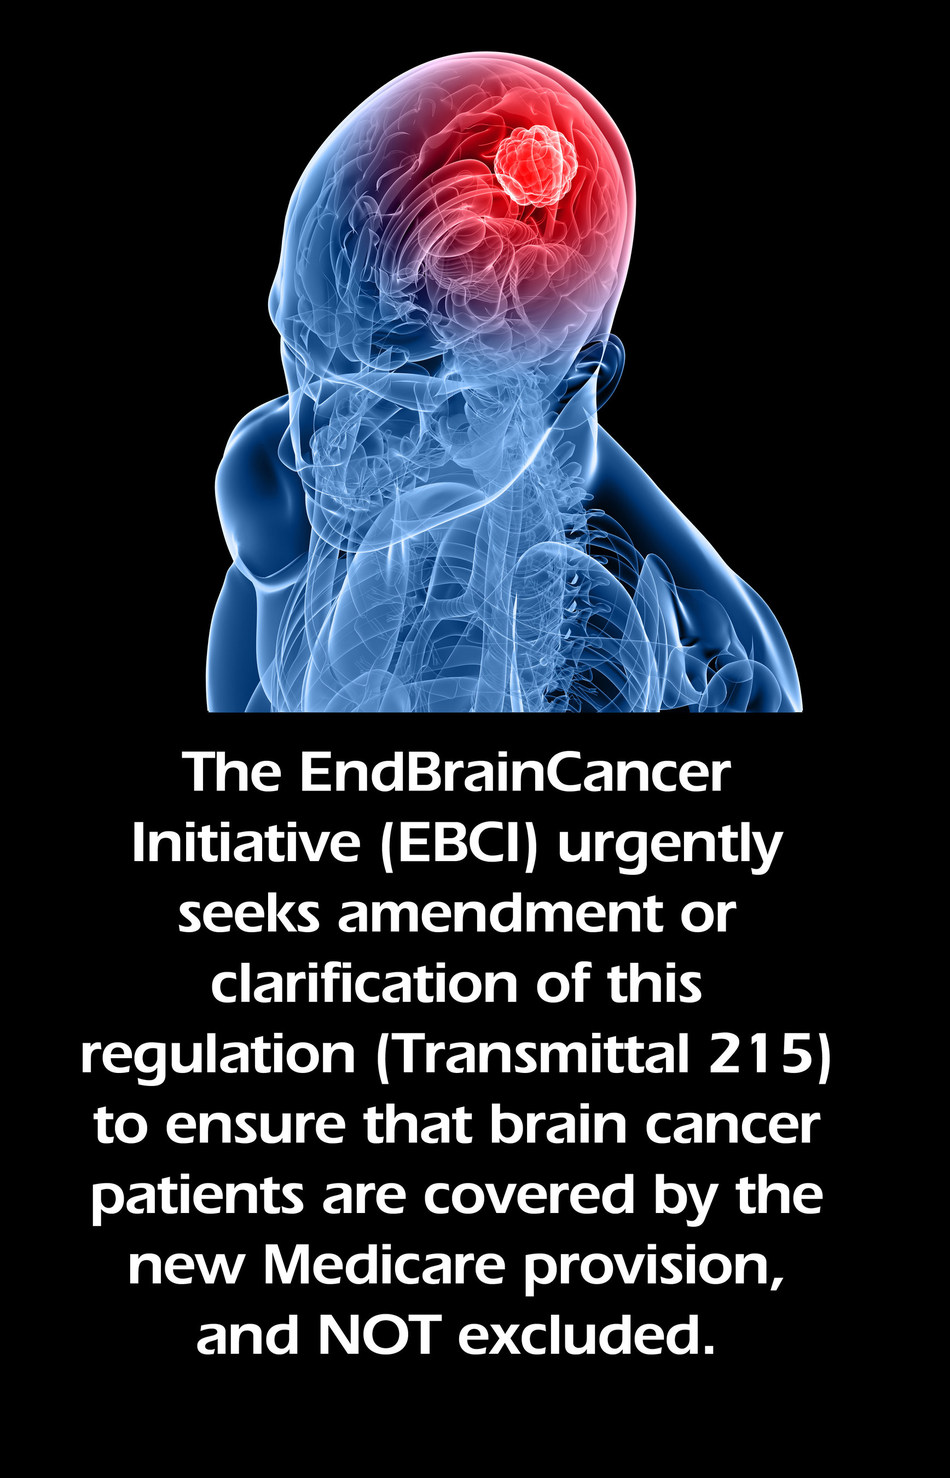 Public comment is needed so that brain cancer patients are not excluded from vital Next Generation Sequencing (NGS).